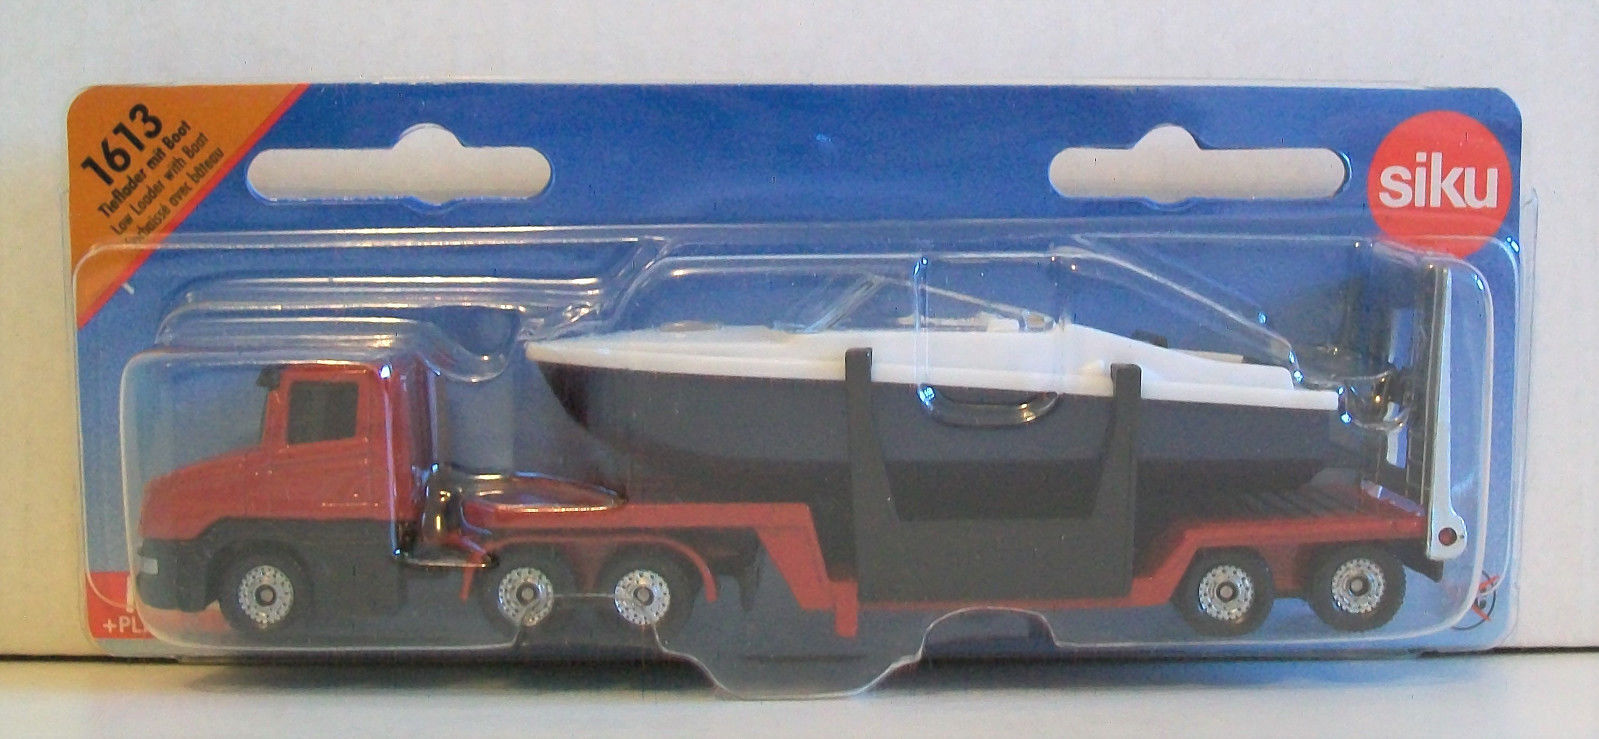 SIKU 1613 Miniature LOW LOADER 15cm Long + BOAT 10cm 10cm 10cm - Diecast & Plastic Parts 61513c